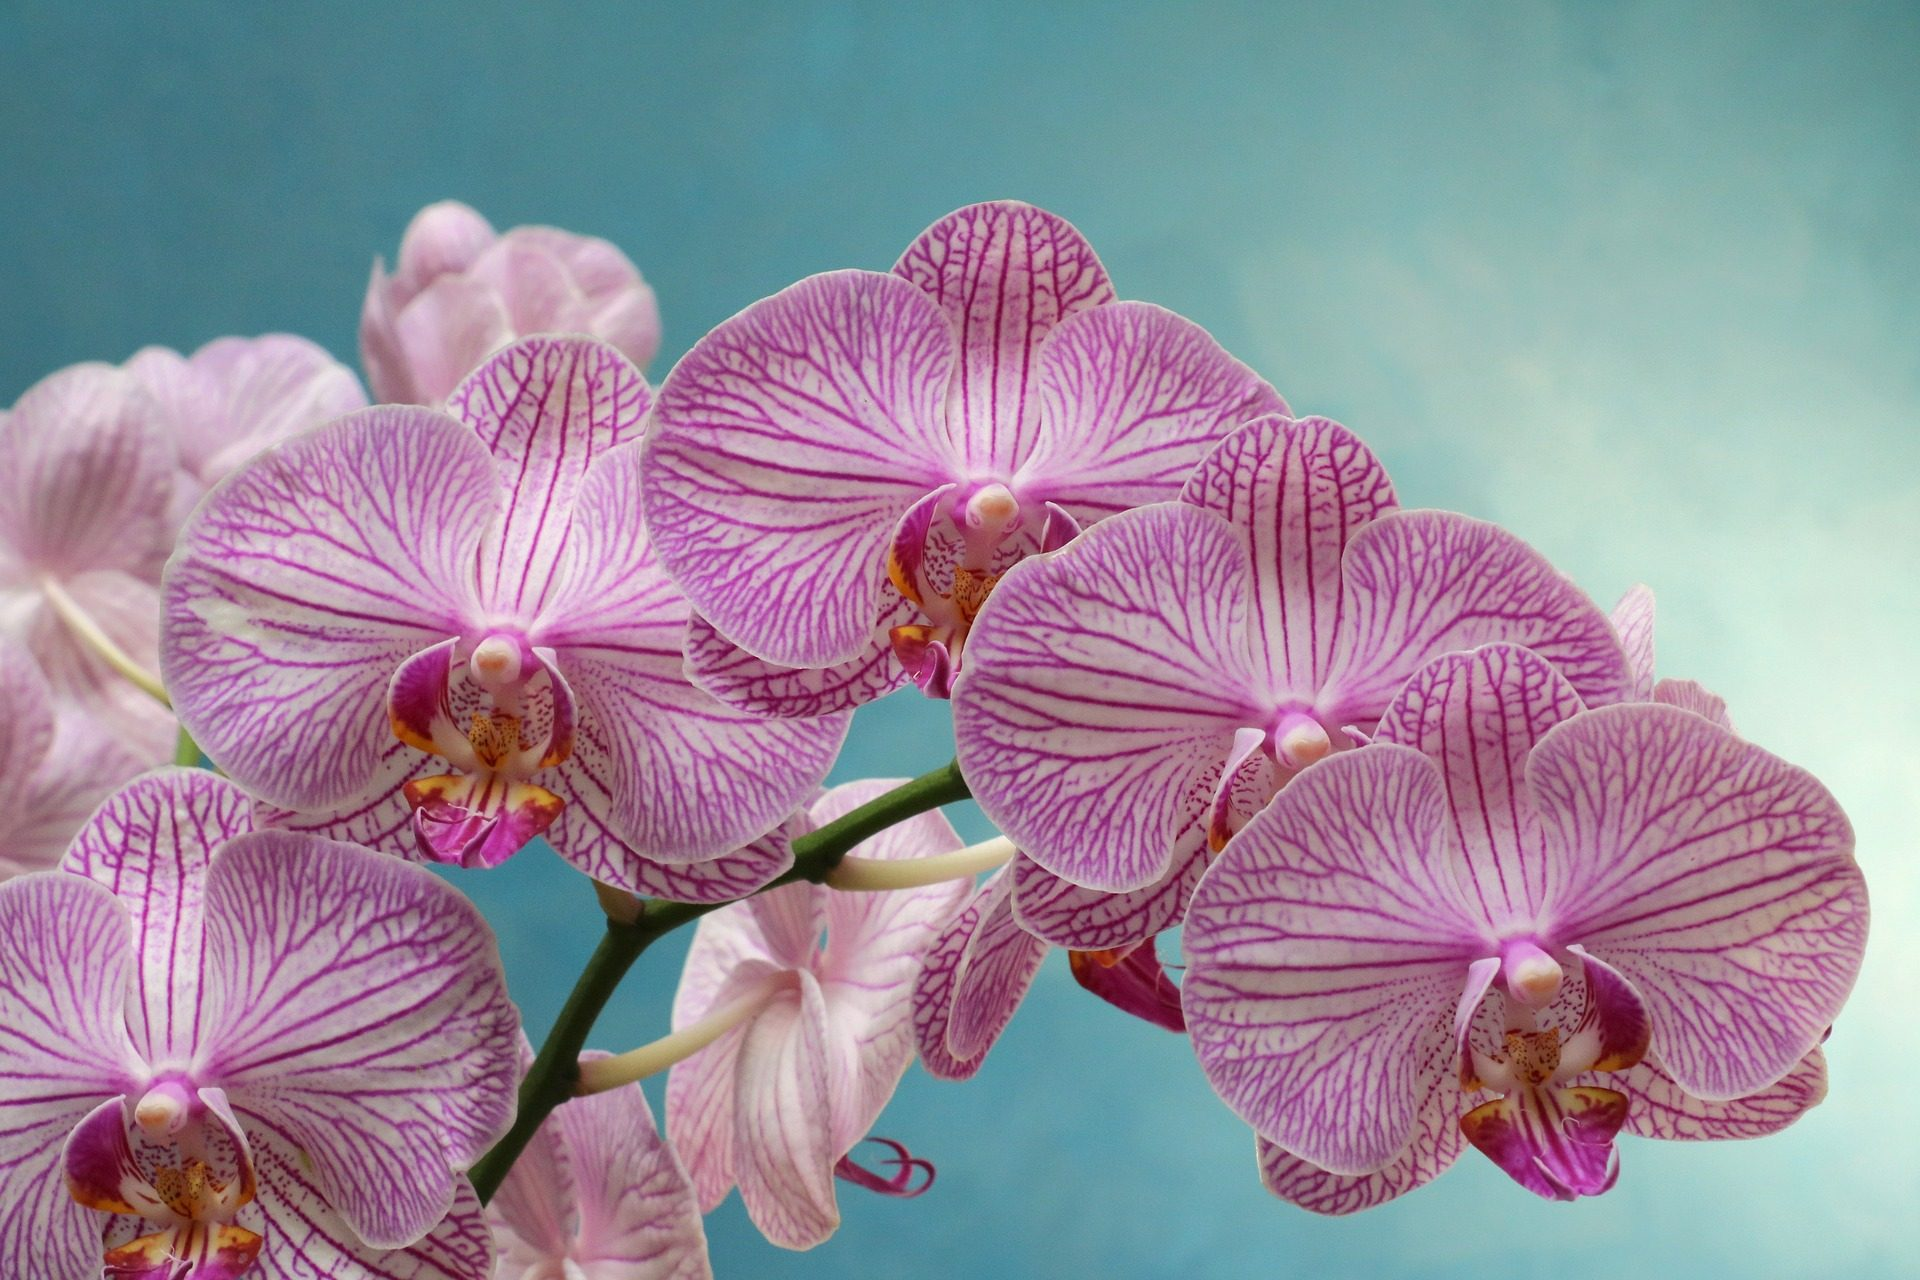 orchidées, fleurs, Bloom, pétales, Purple - Fonds d'écran HD - Professor-falken.com